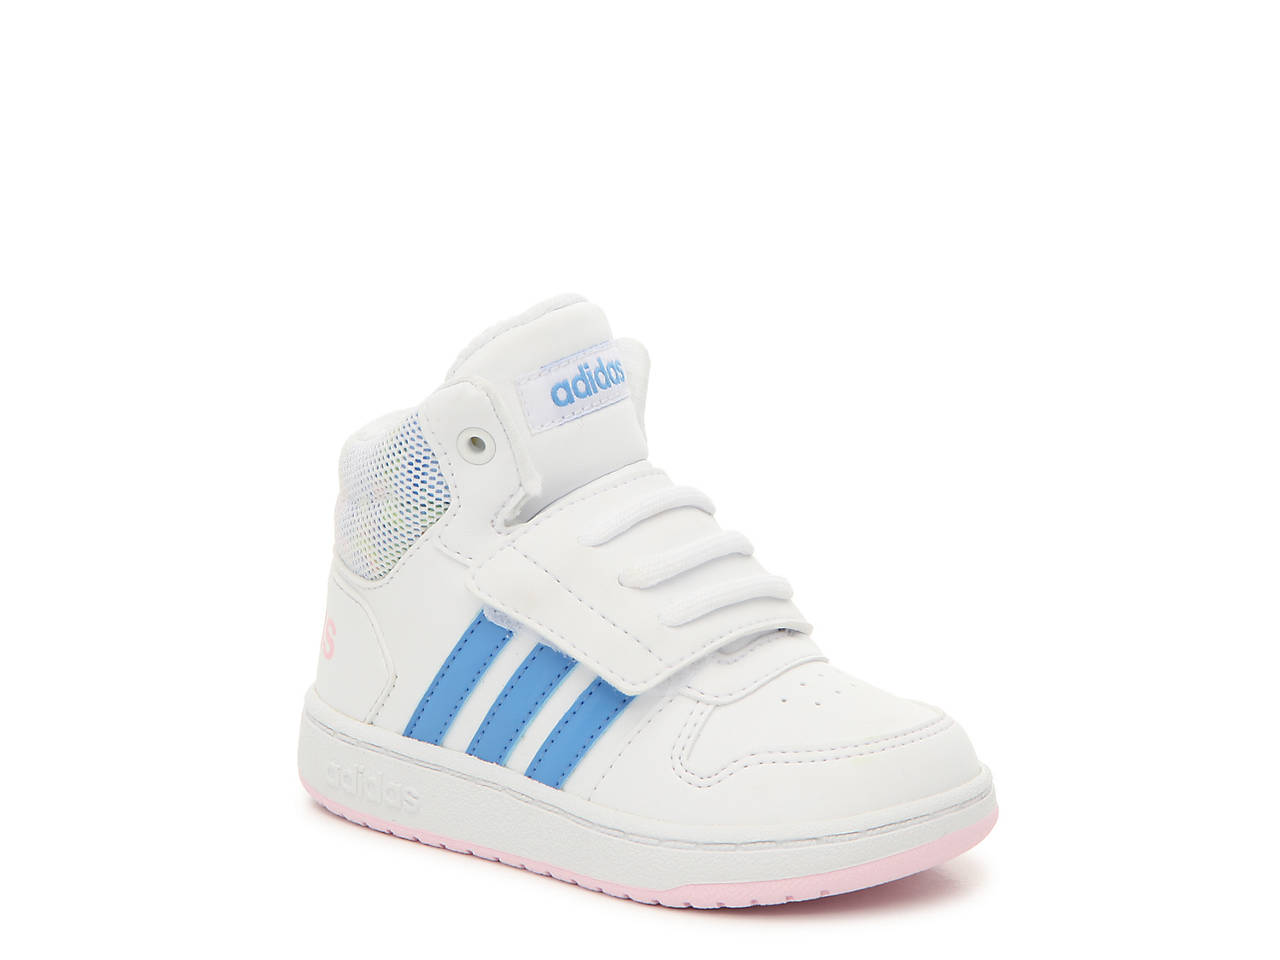 0f0c10729 adidas Hoops Mid 2.0 Infant & Toddler High-Top Sneaker Kids Shoes | DSW